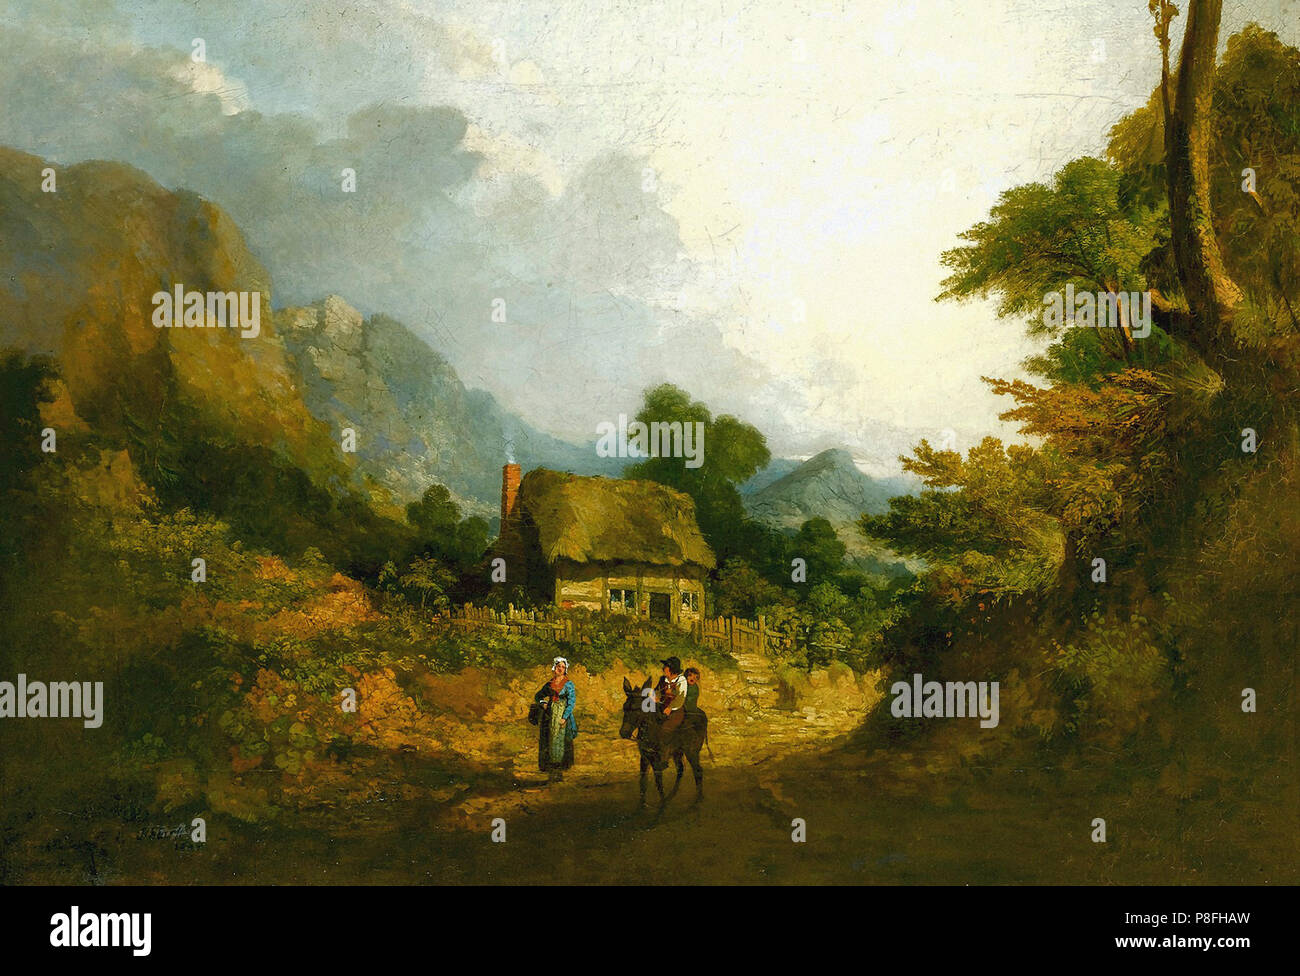 Stark  James - a Landscape with Travellers and Donkey in a Lane - Stock Image